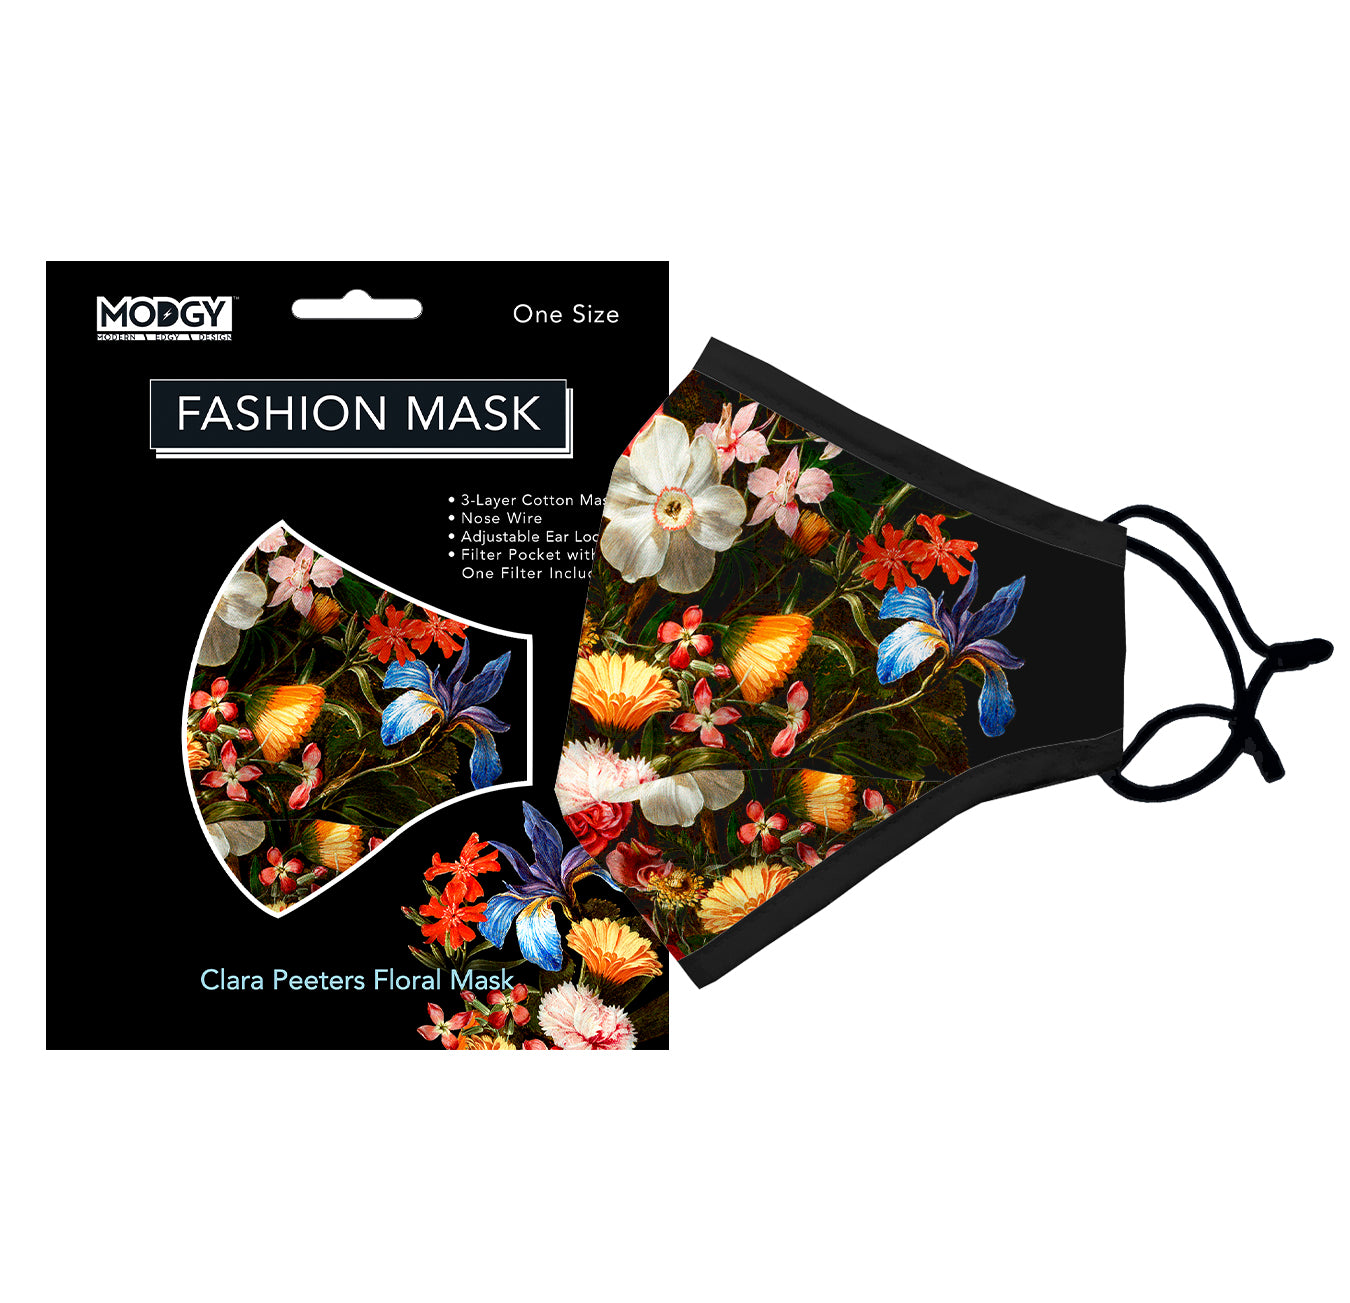 Clara Peeters Floral Fashion Mask